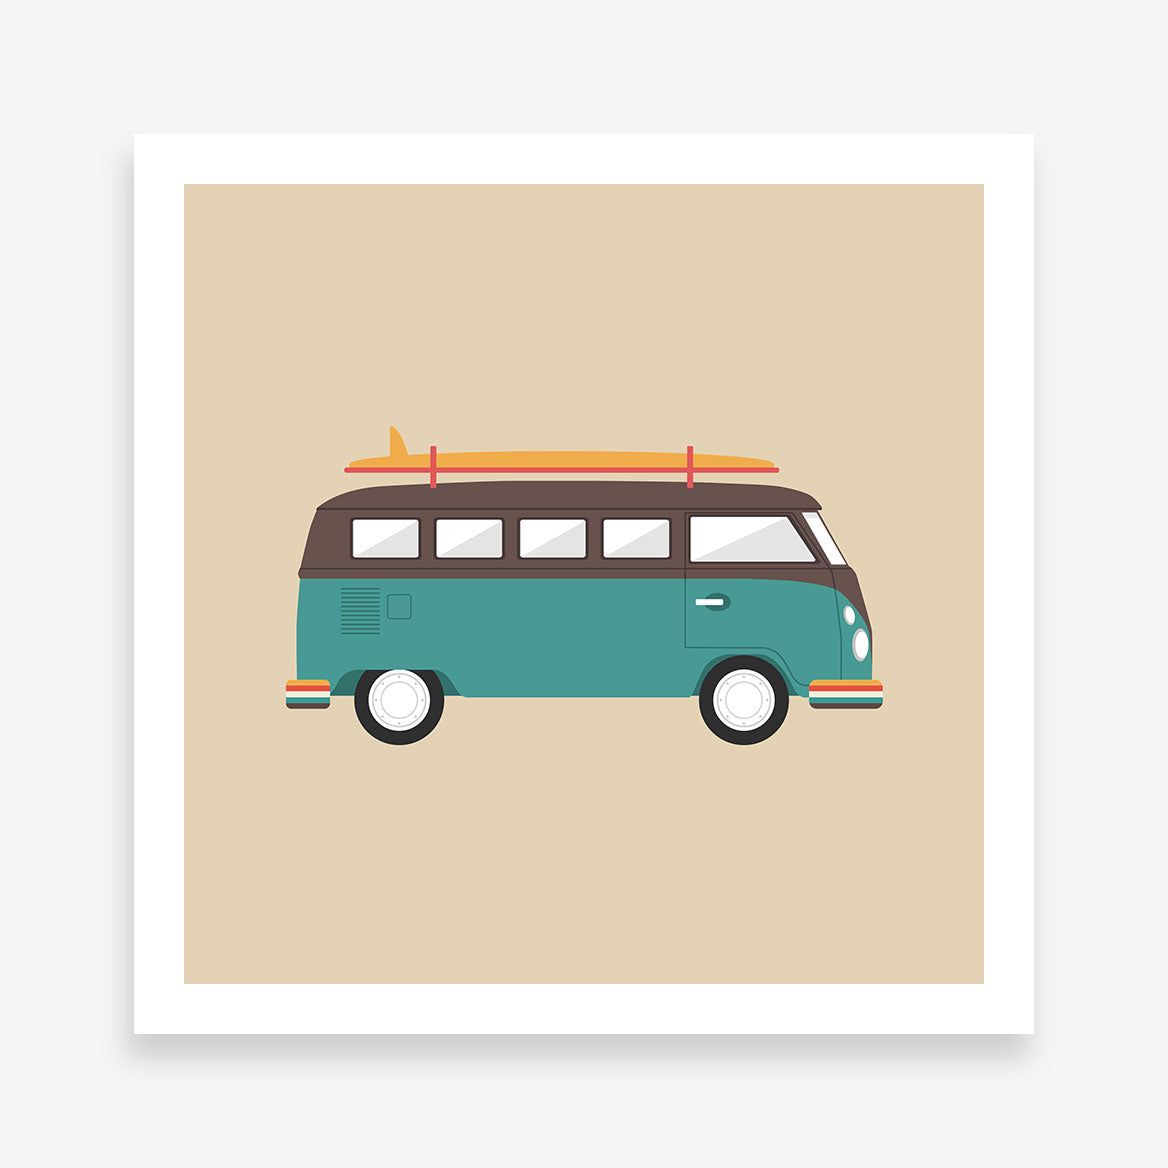 Poster print with a blue and brown retro camper van, on light brown background